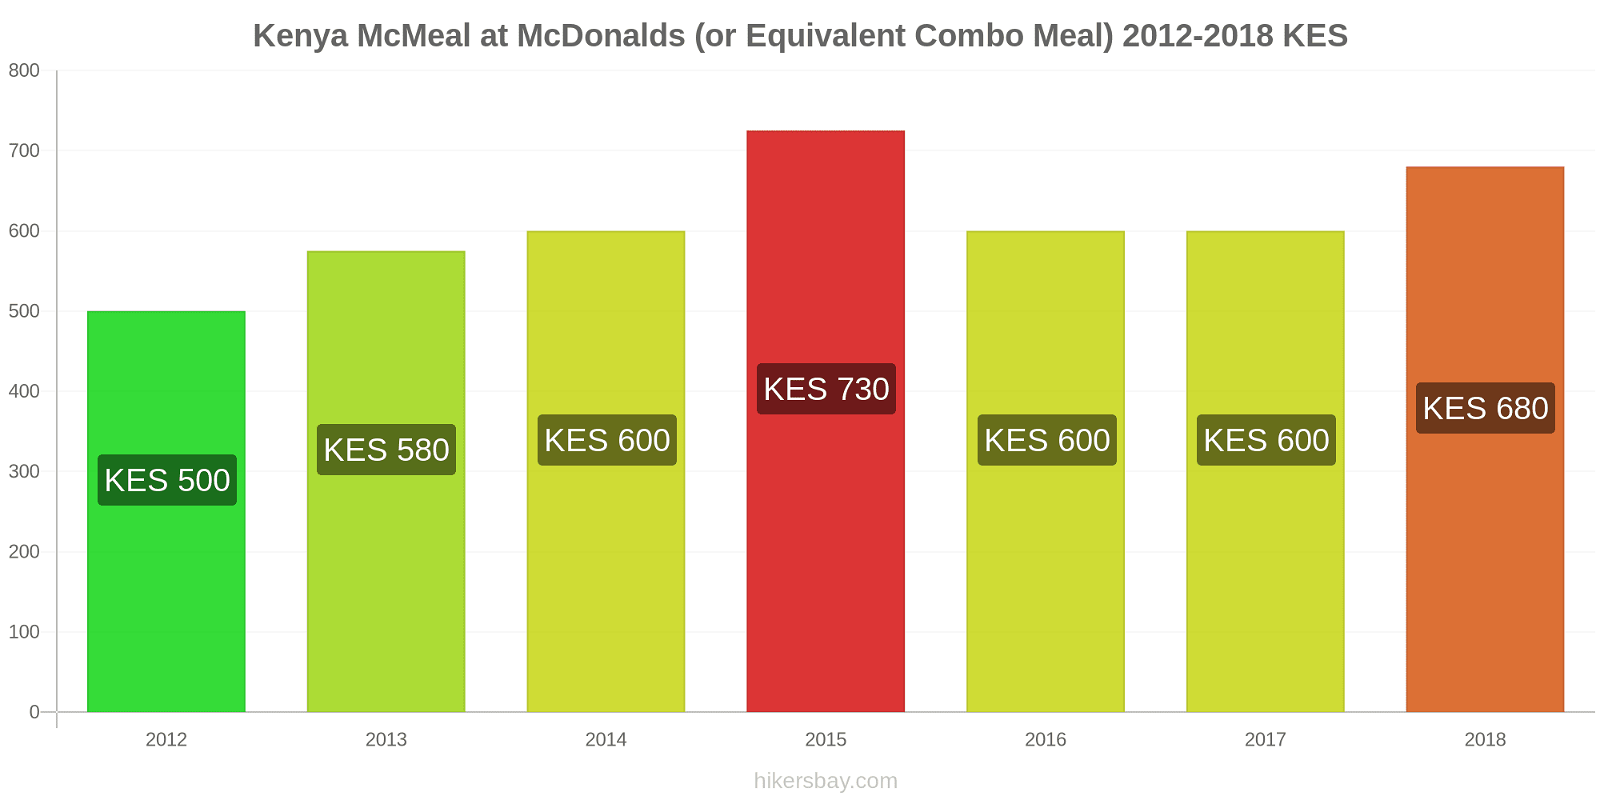 Kenya price changes McMeal at McDonalds (or Equivalent Combo Meal) hikersbay.com